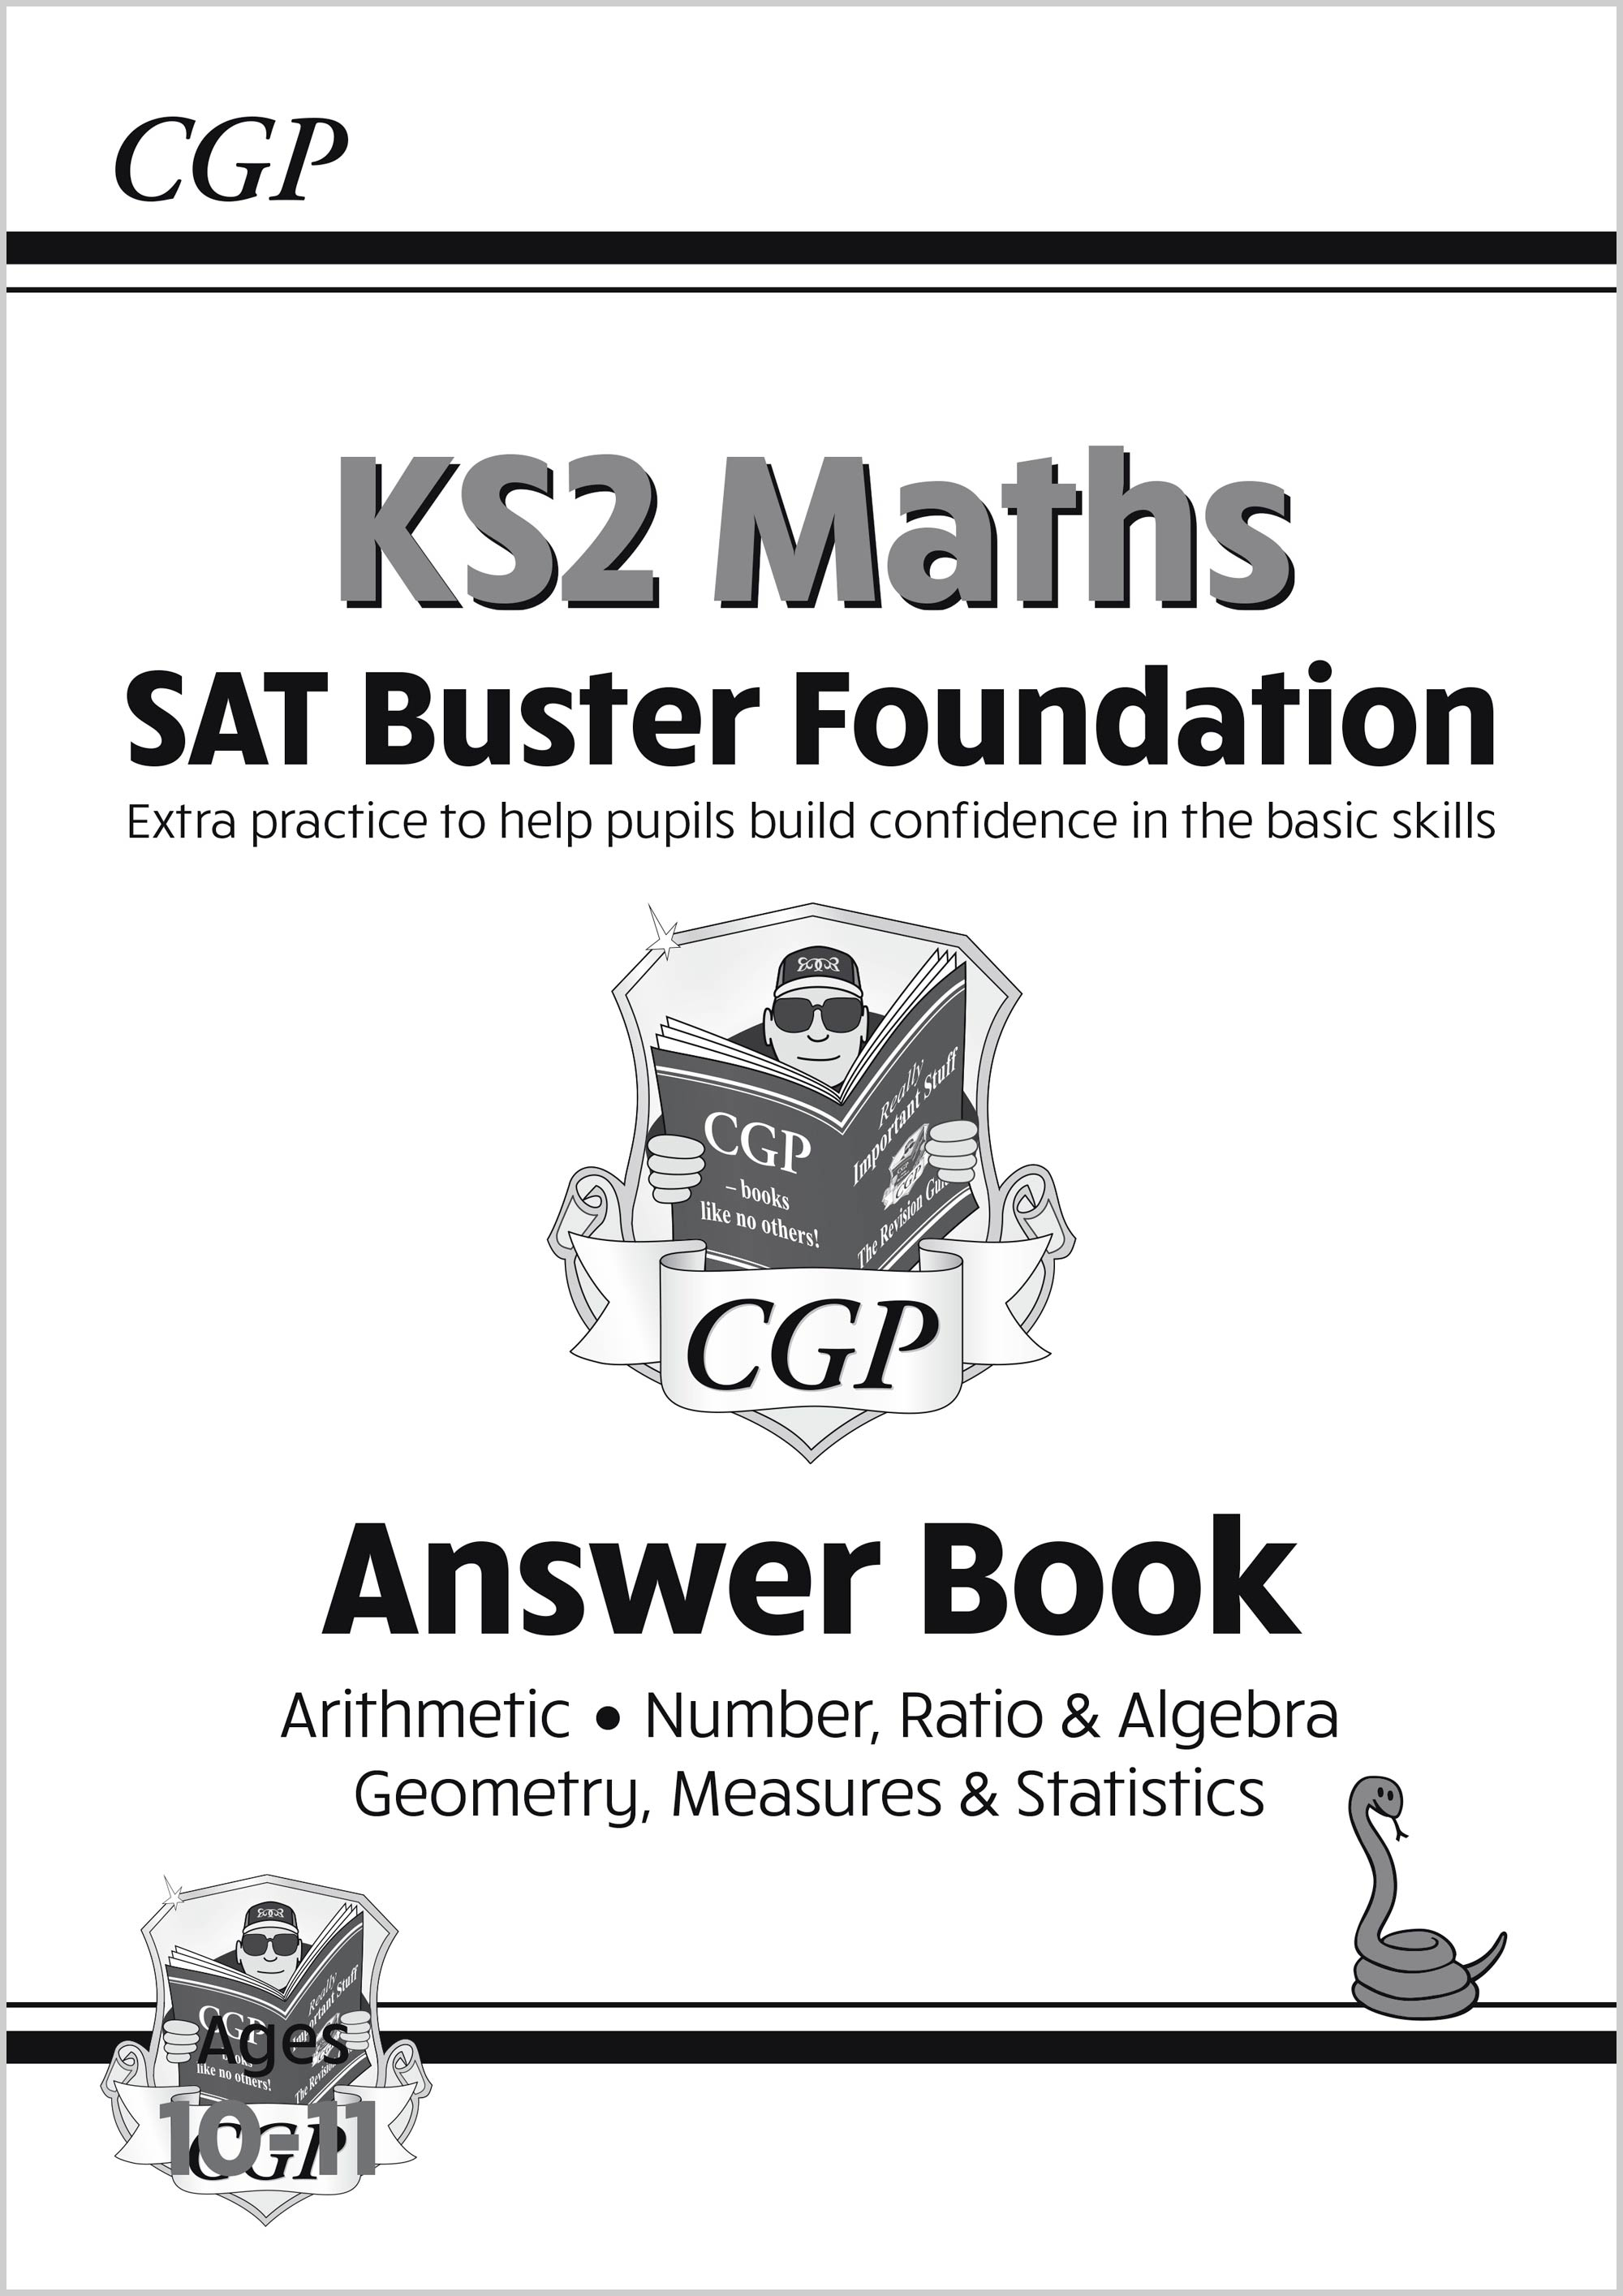 M6FA21 - New KS2 Maths SAT Buster Foundation: Answer Book (for the 2021 tests)